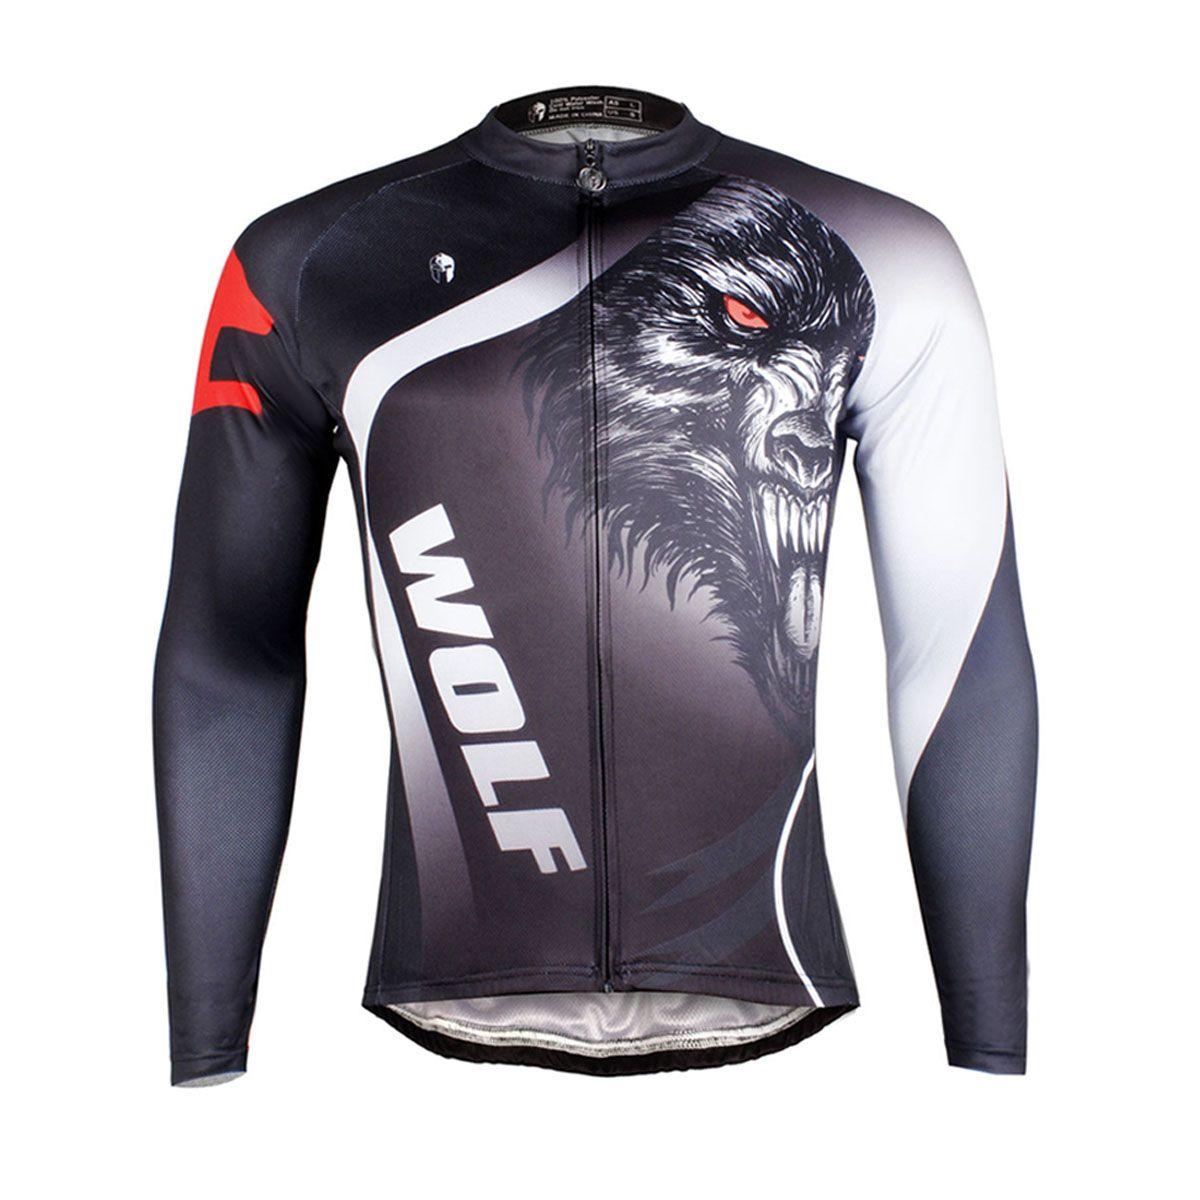 Mountain Bike Apparel,cycling apparel brands,cycling